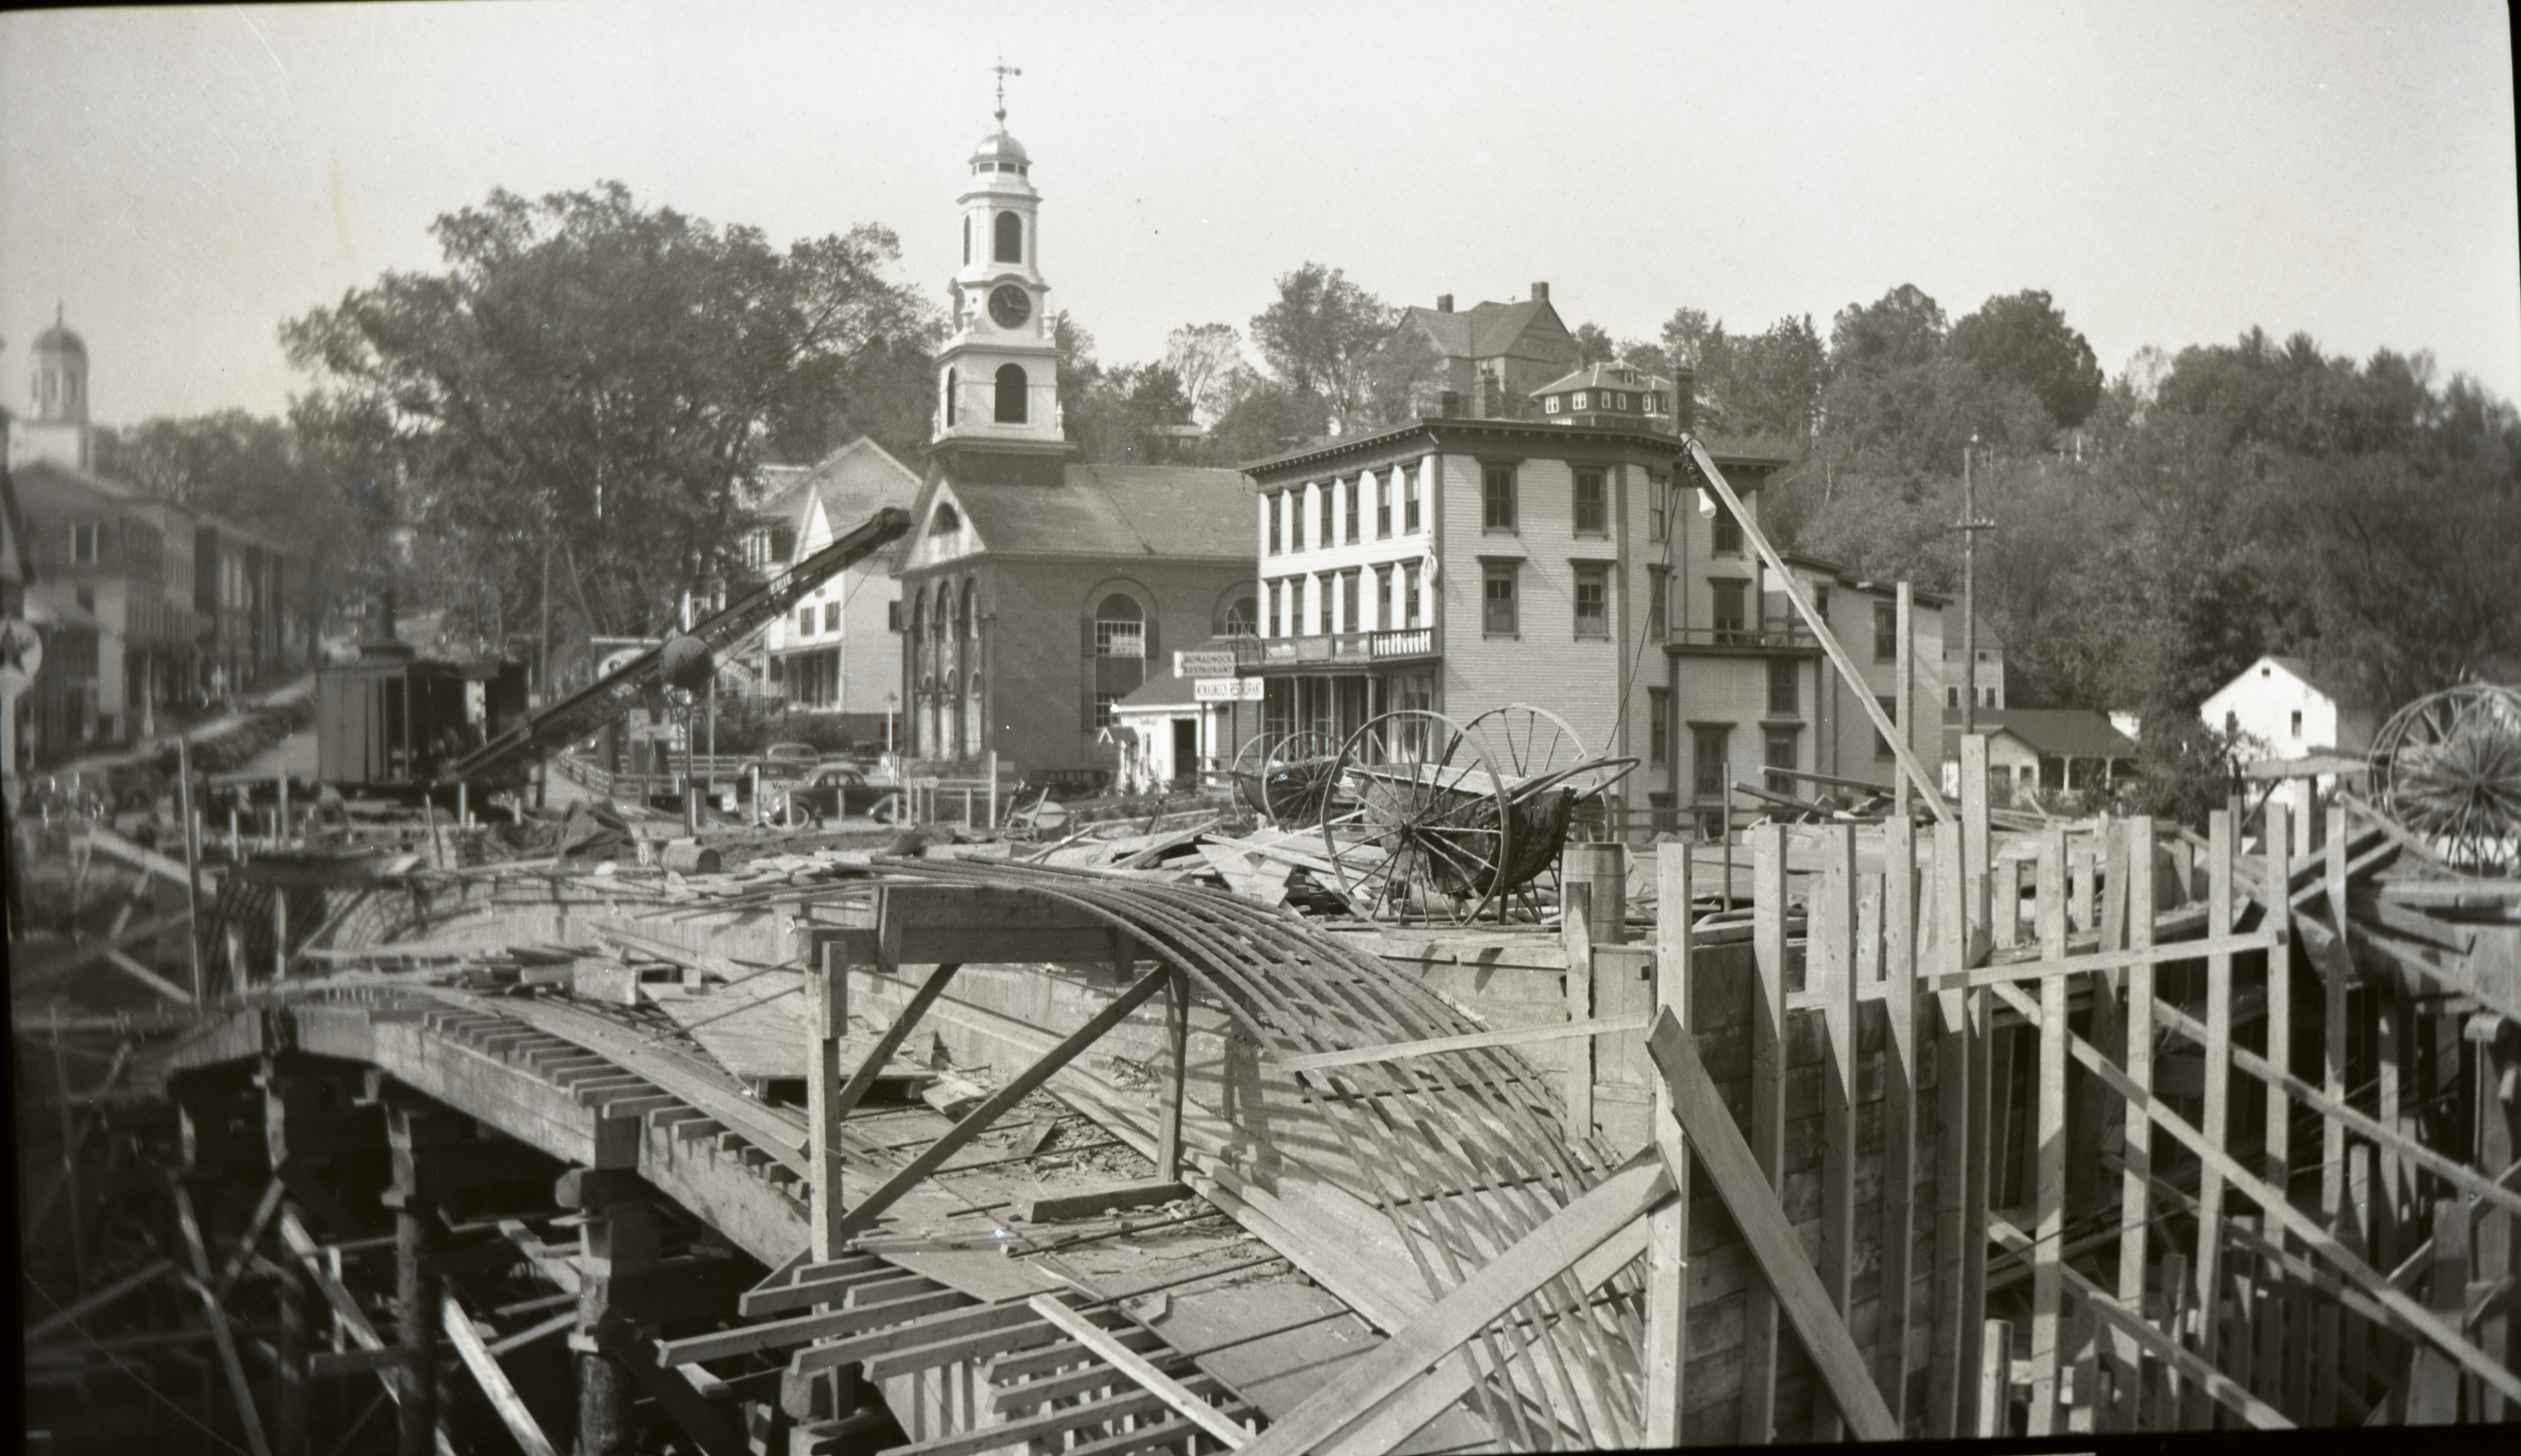 1940 Bridge Construction - Formwork & Reinforcing Looking NW with Crane